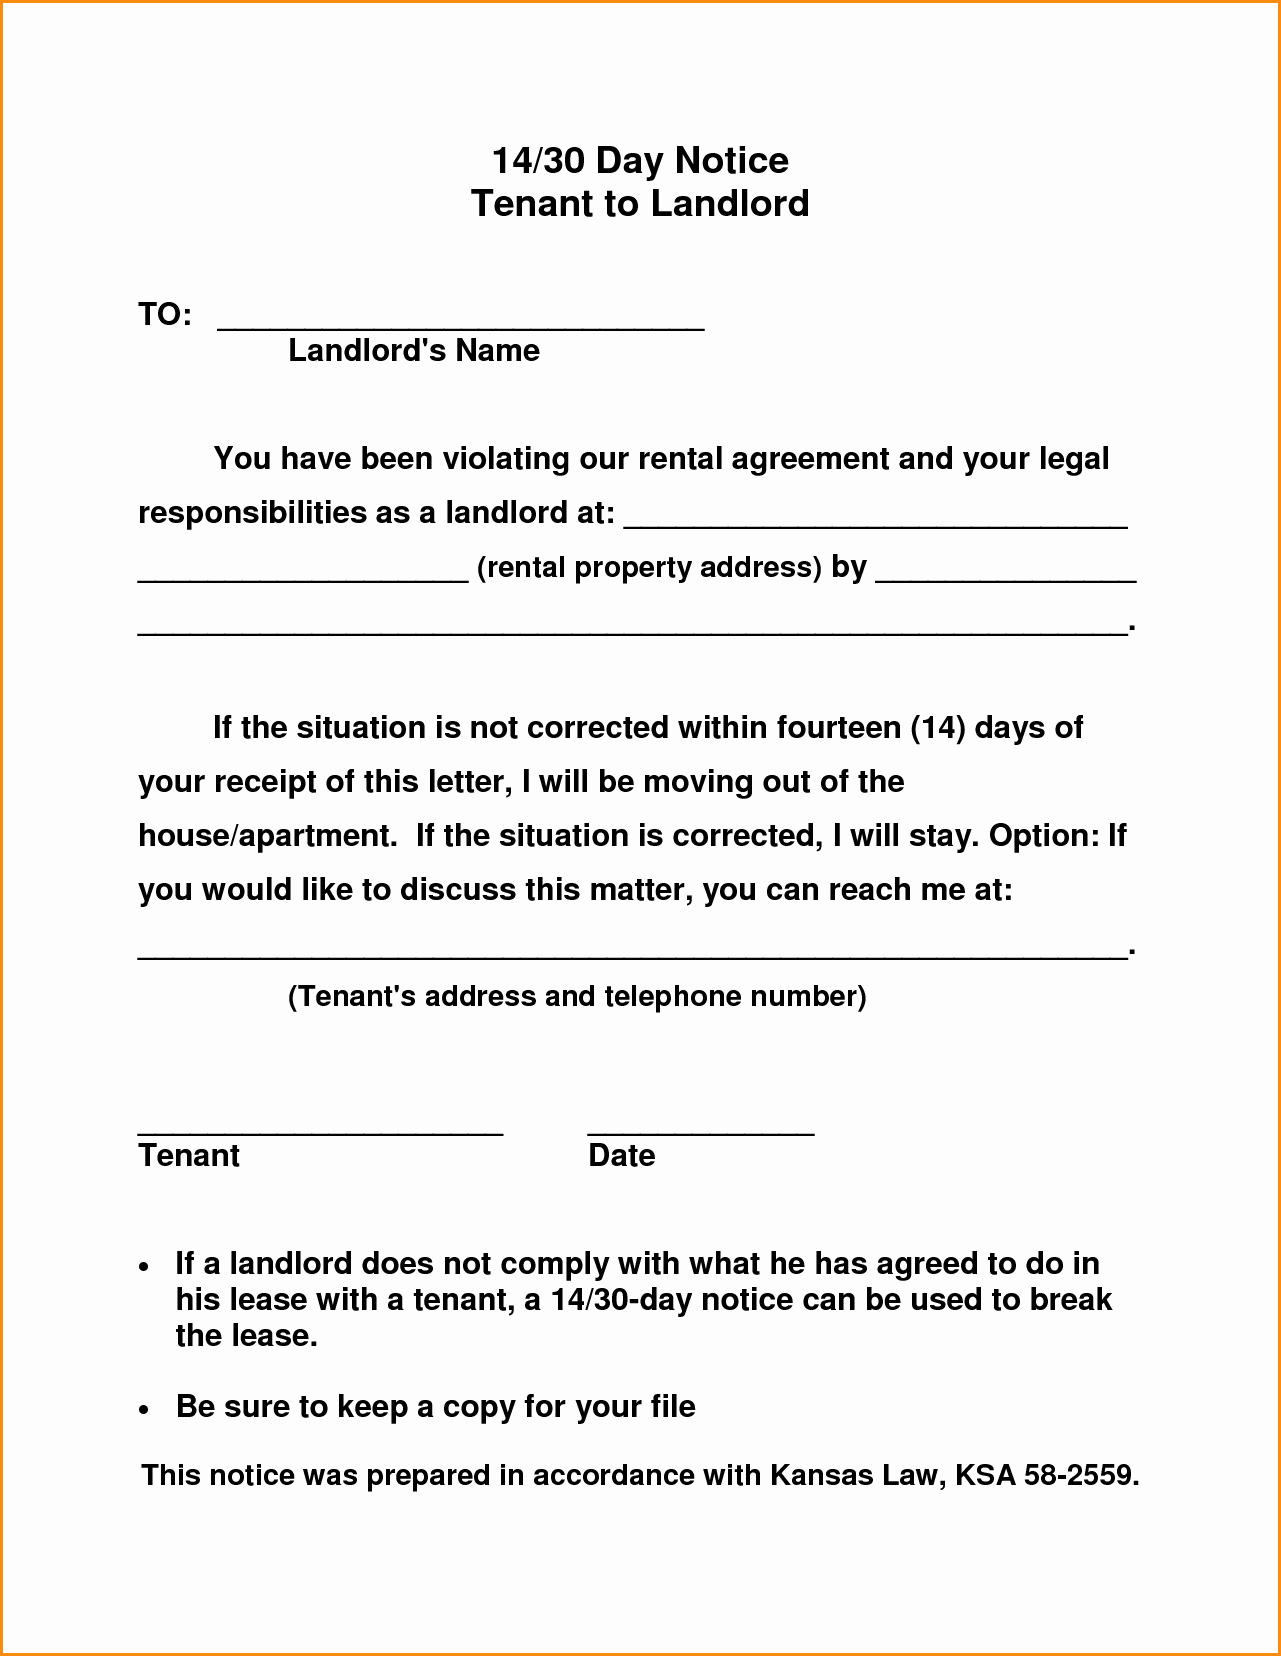 30 Day Notice to Landlord Template Fresh 30 Day Notice to Landlord Template